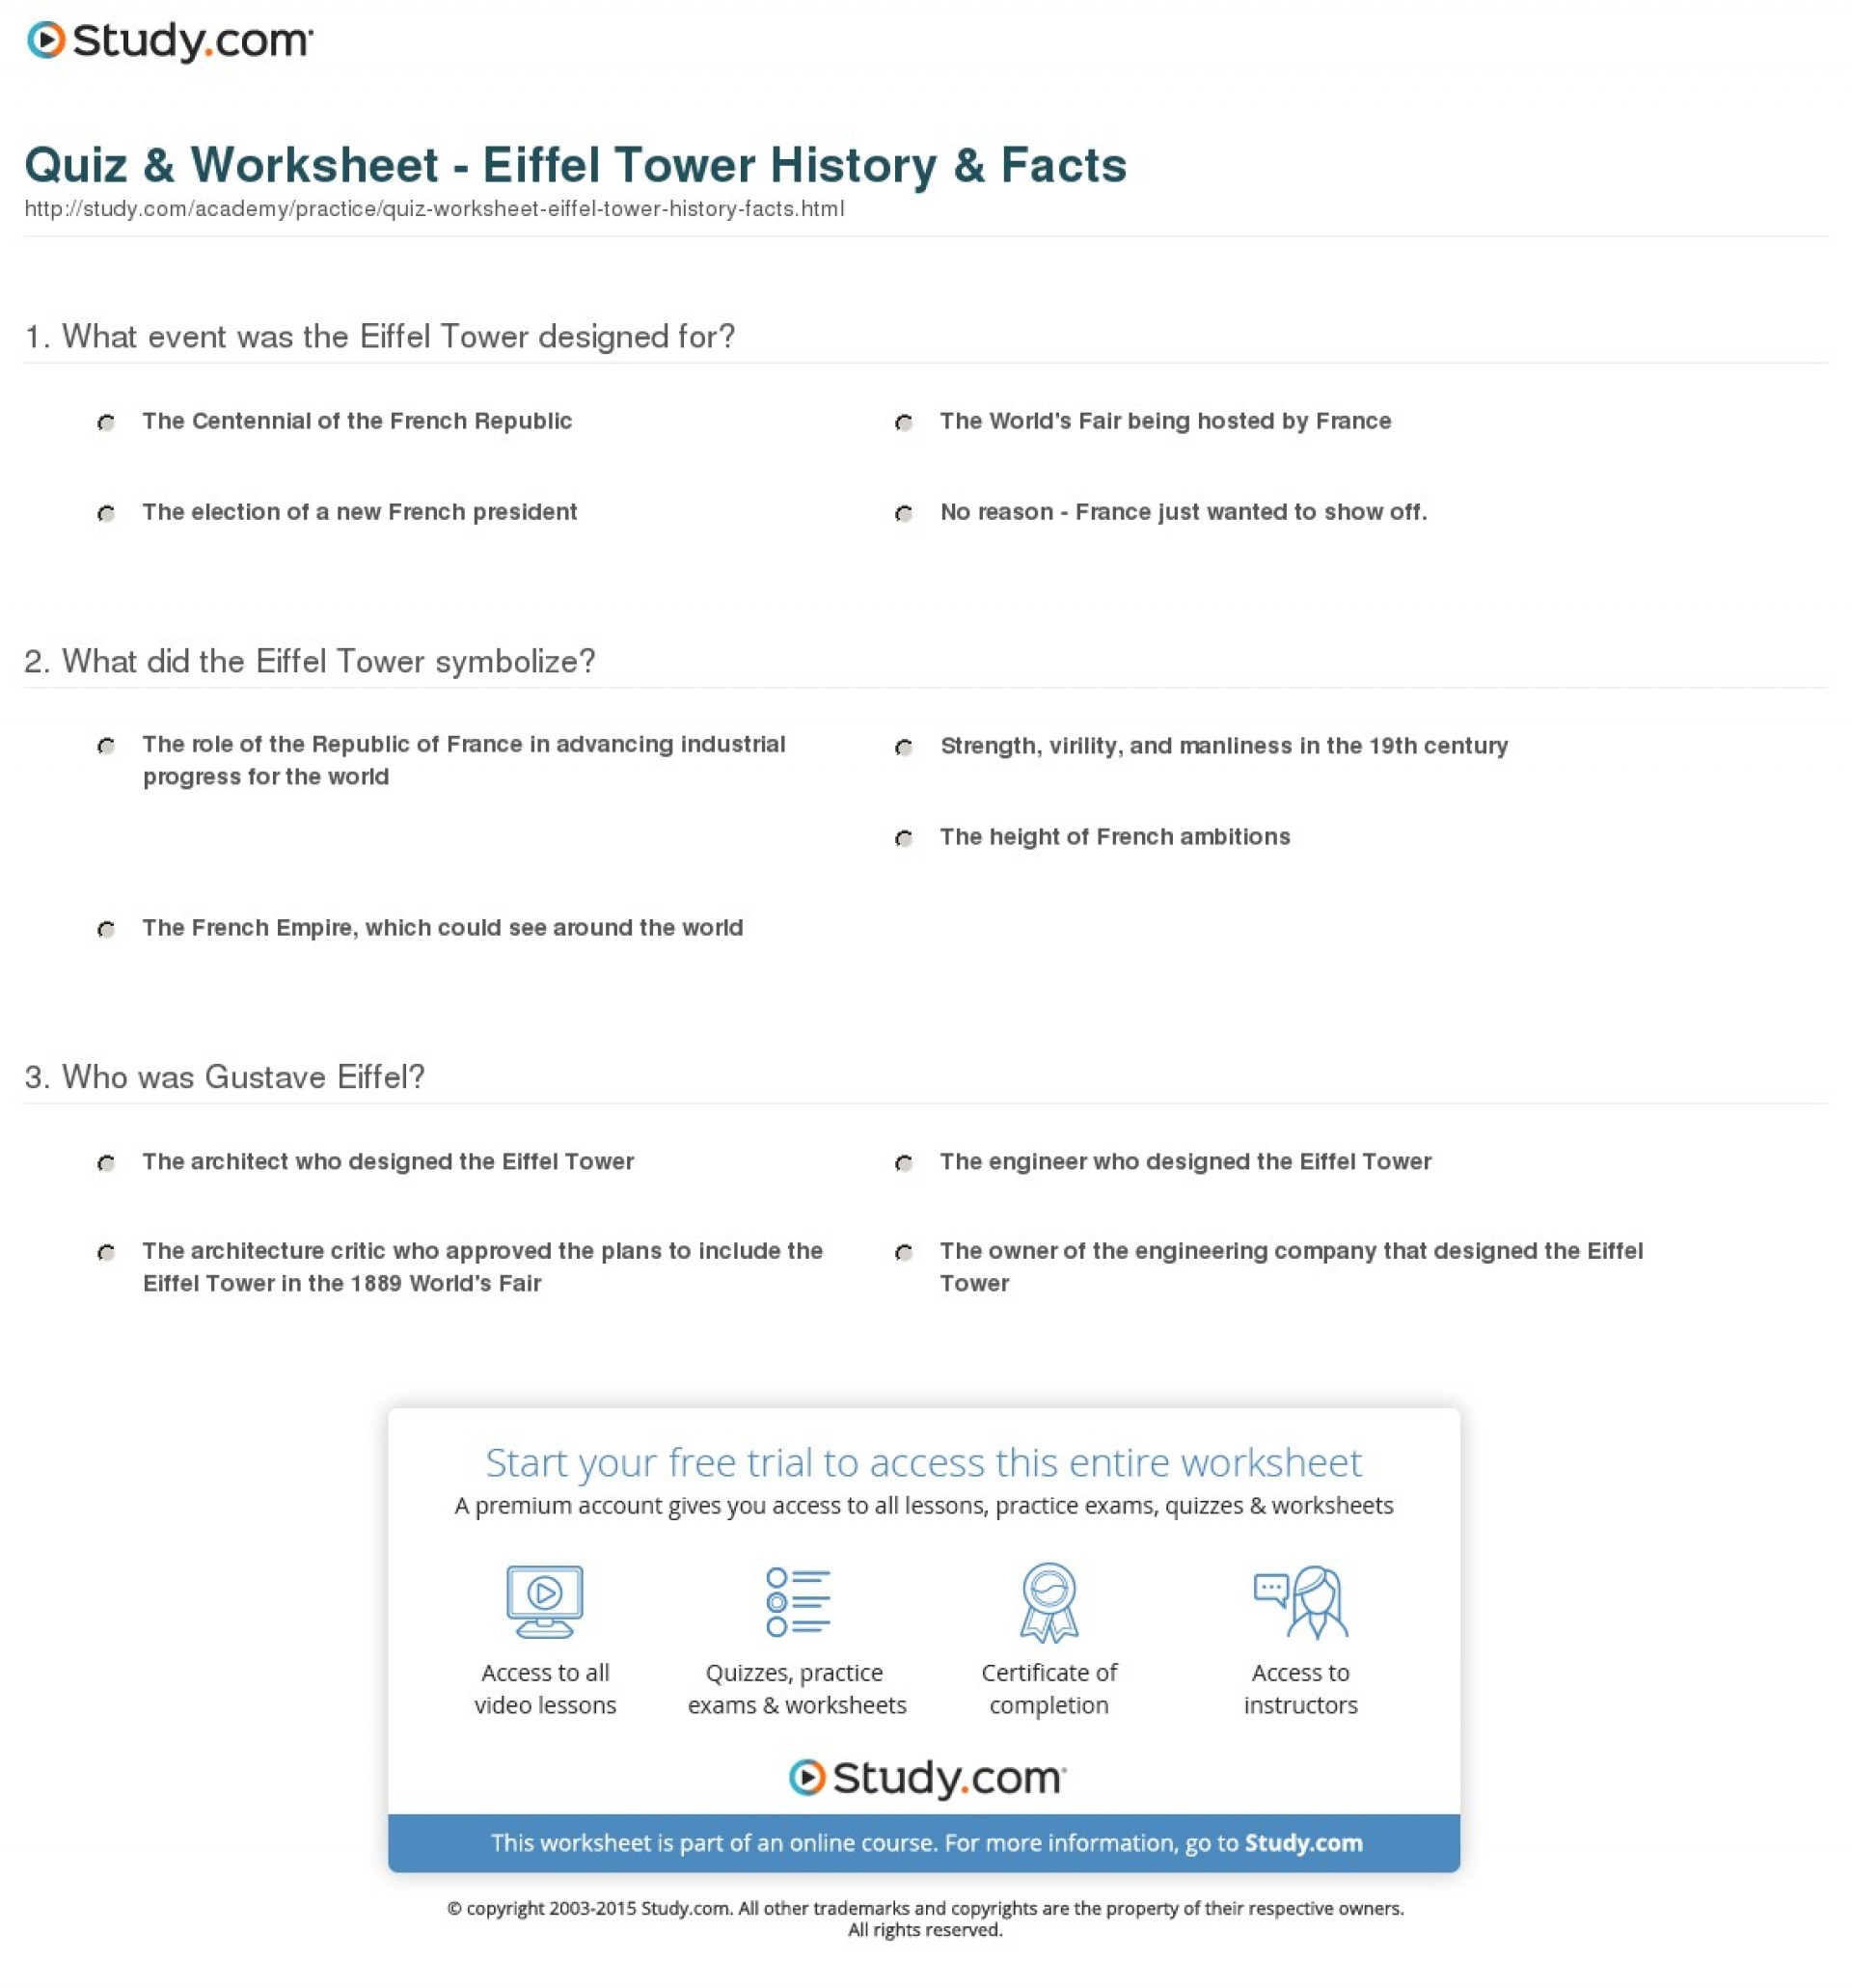 007 Quiz Worksheet Eiffel Tower History Facts Essay Example Exceptional Description 1920